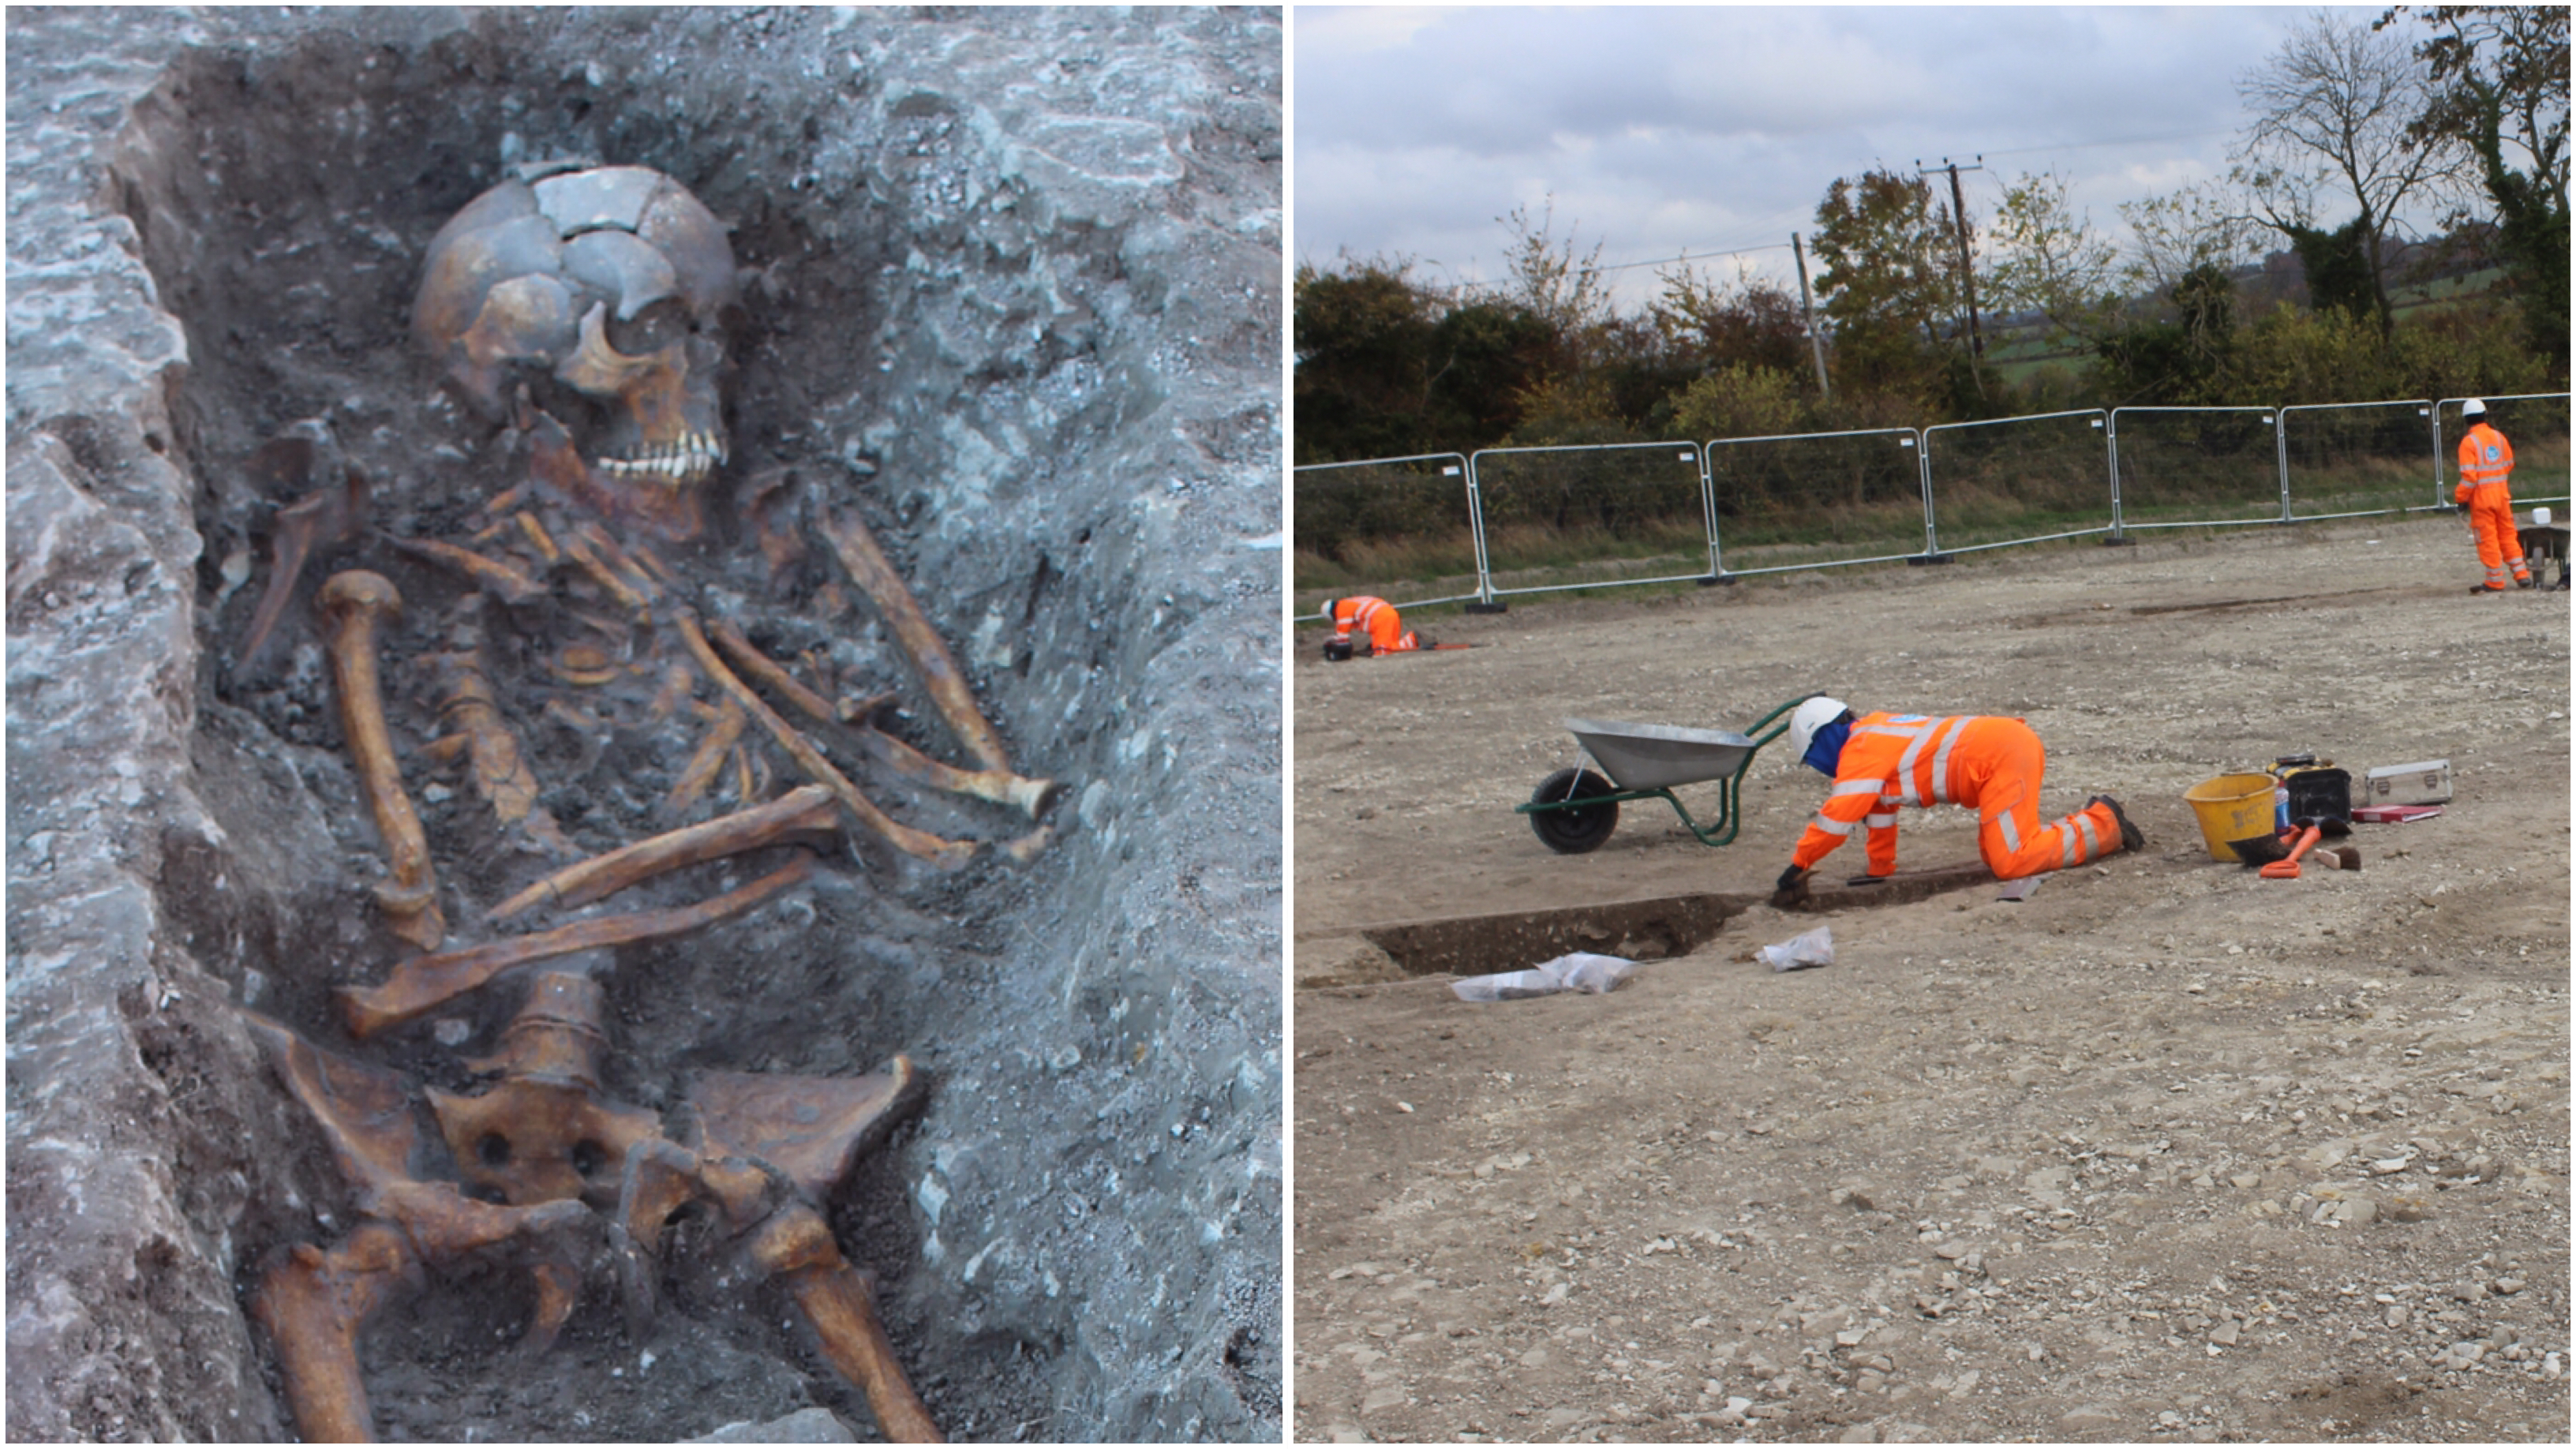 'Human sacrifice' grave found in England